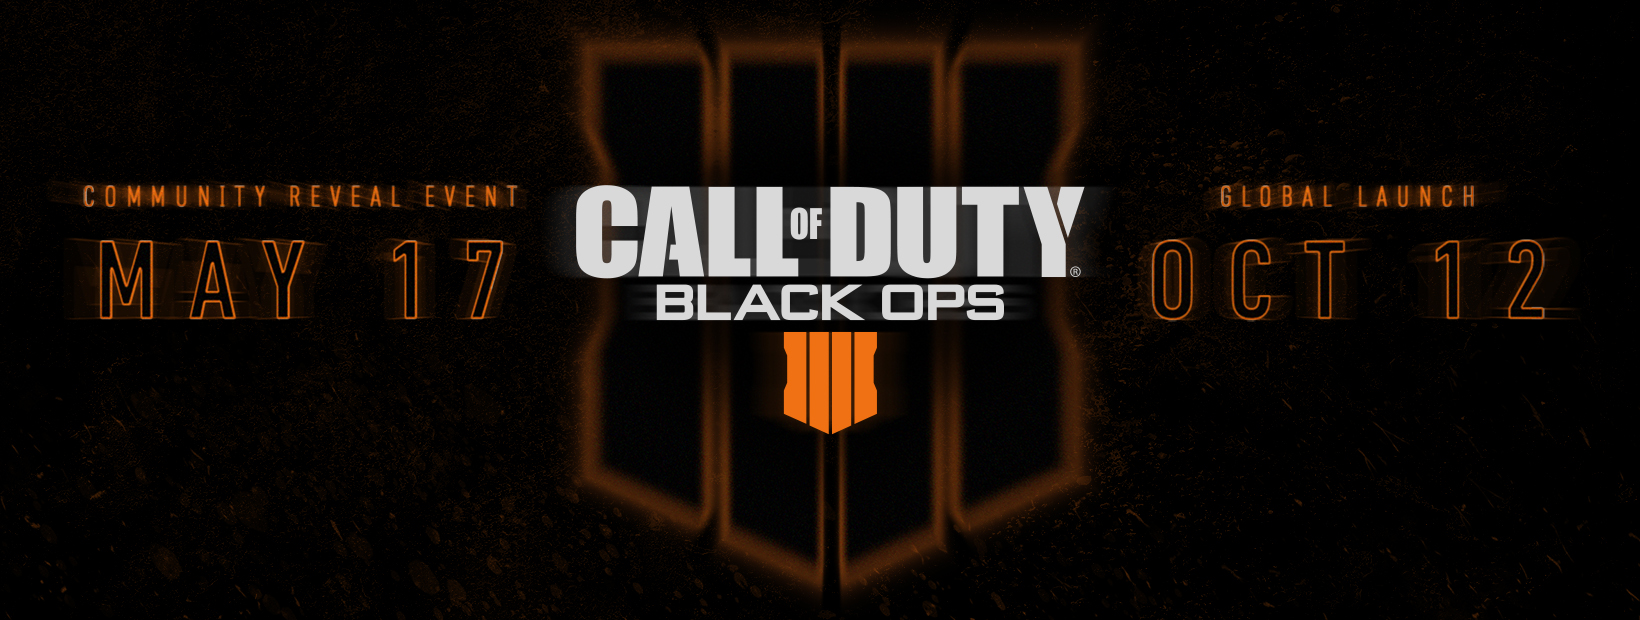 Call of Duty: Black Ops 4 coming on October 12 - Nerd Reactor